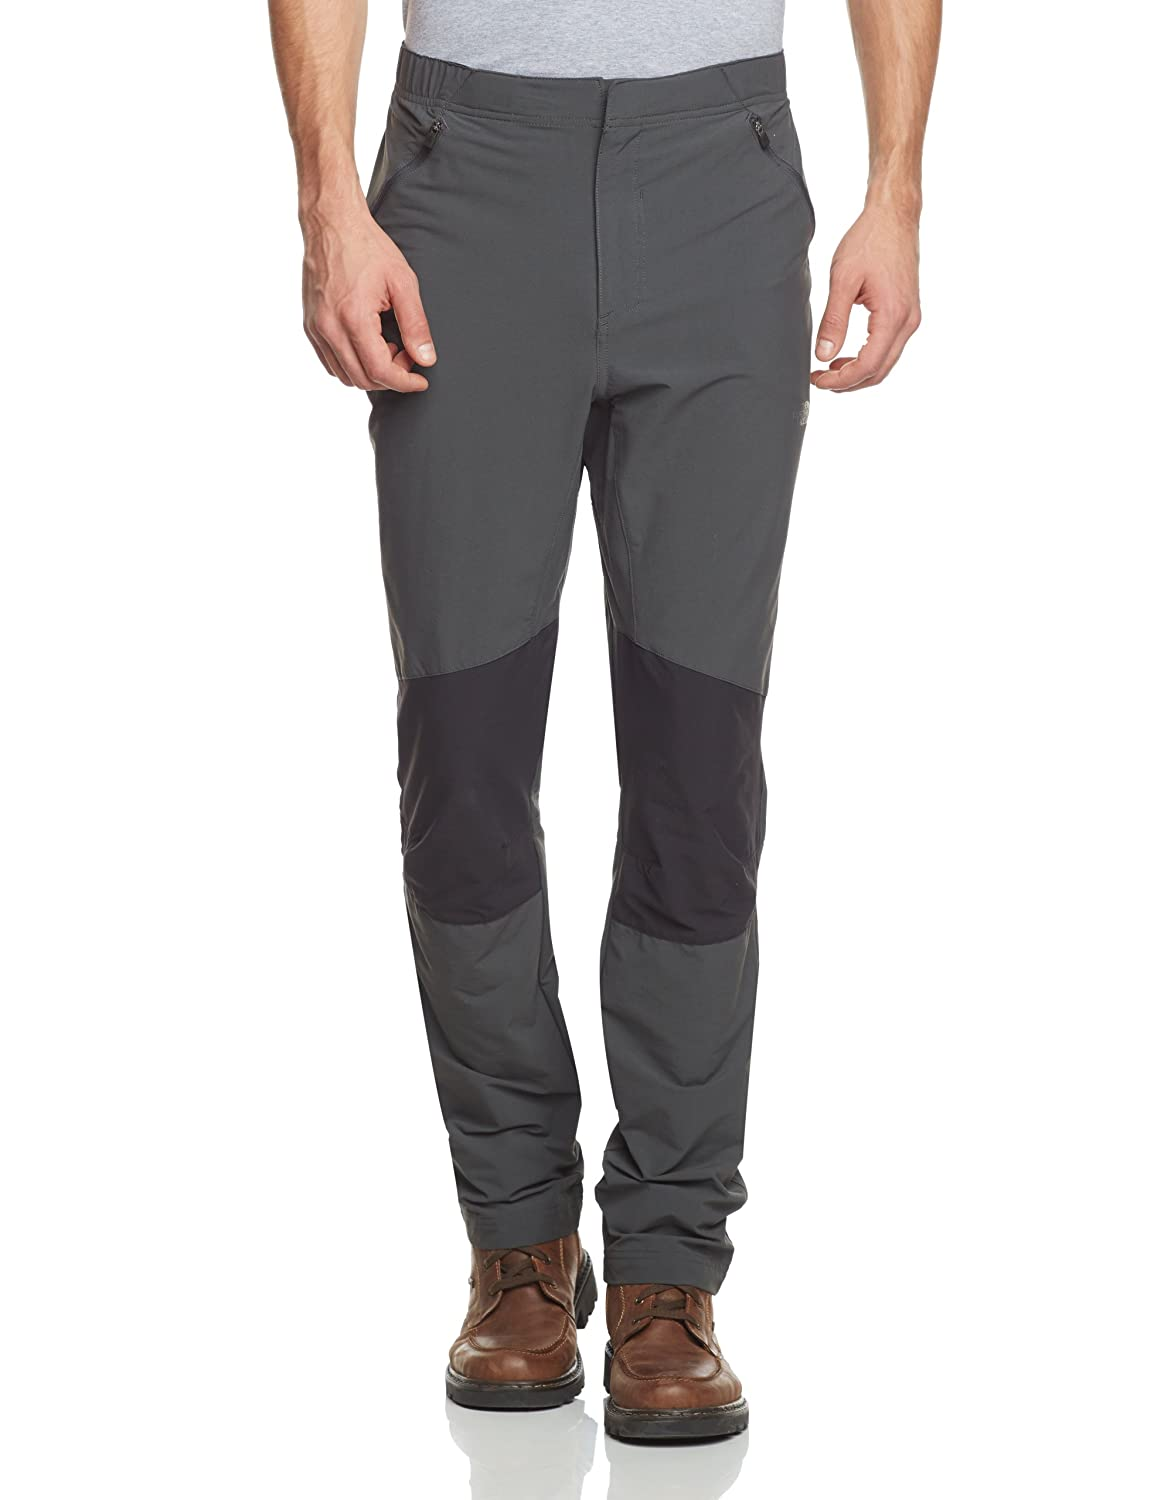 THE NORTH FACE Herren Wanderhose Sentiero